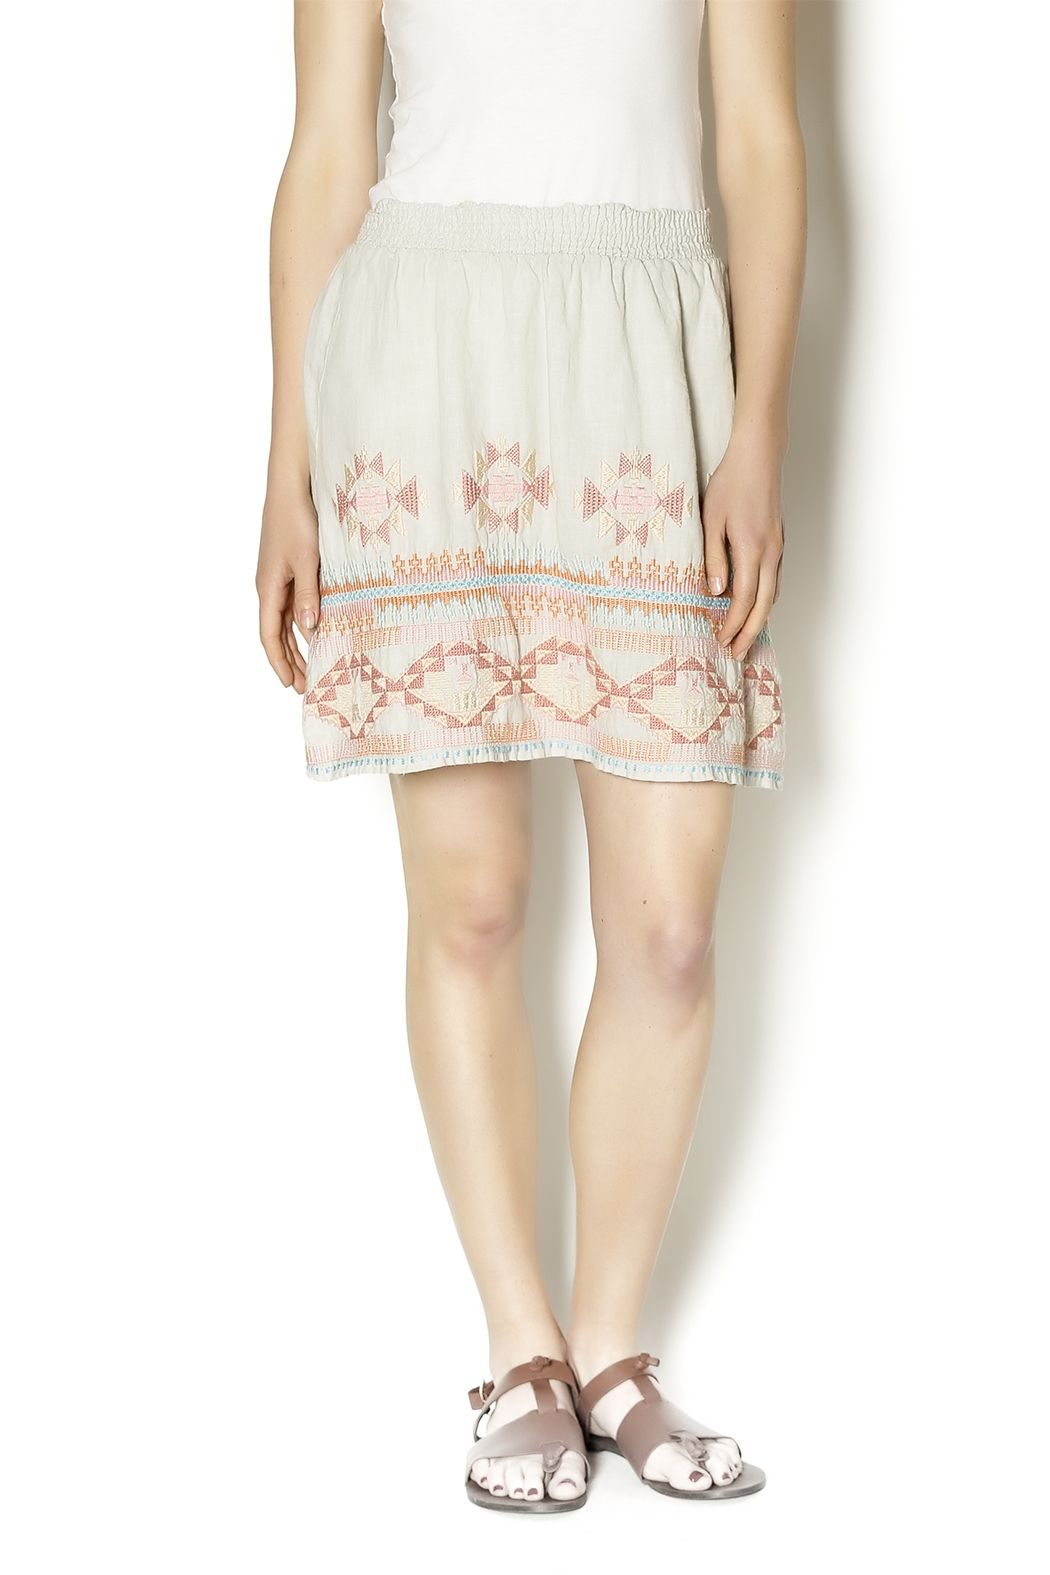 Cute linen skirt with geometric embroidery. Comfy and perfect paired with a fitted tee.